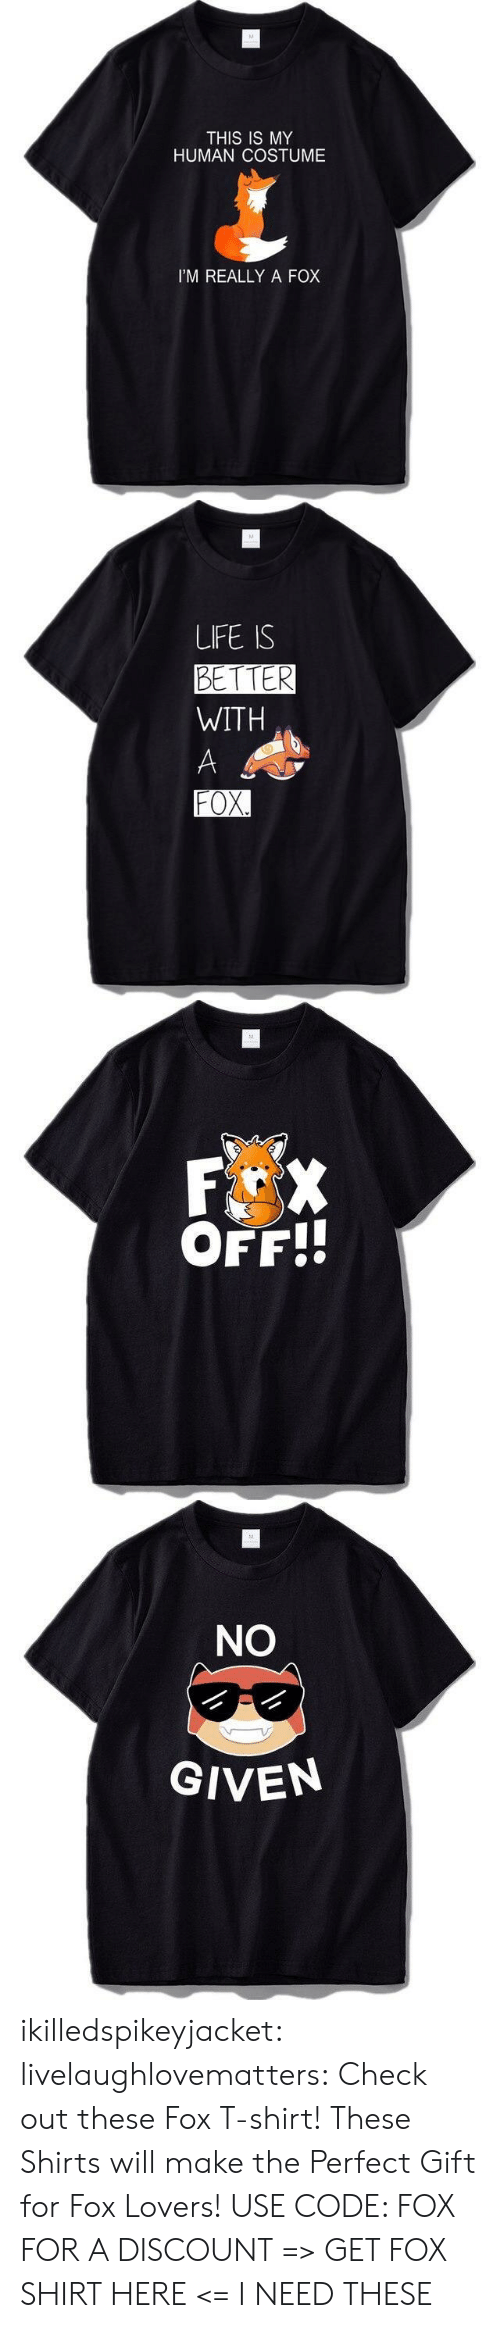 My Human: M  THIS IS MY  HUMAN COSTUME  I'M REALLY A FOX   M  LIFE IS  BETTER  WITH  A  FOX.   M  F X  OFF!!   M  NO  GIVEN ikilledspikeyjacket:  livelaughlovematters:  Check out these Fox T-shirt! These Shirts will make the Perfect Gift for Fox Lovers! USE CODE: FOX FOR A DISCOUNT => GET FOX SHIRT HERE <=  I NEED THESE